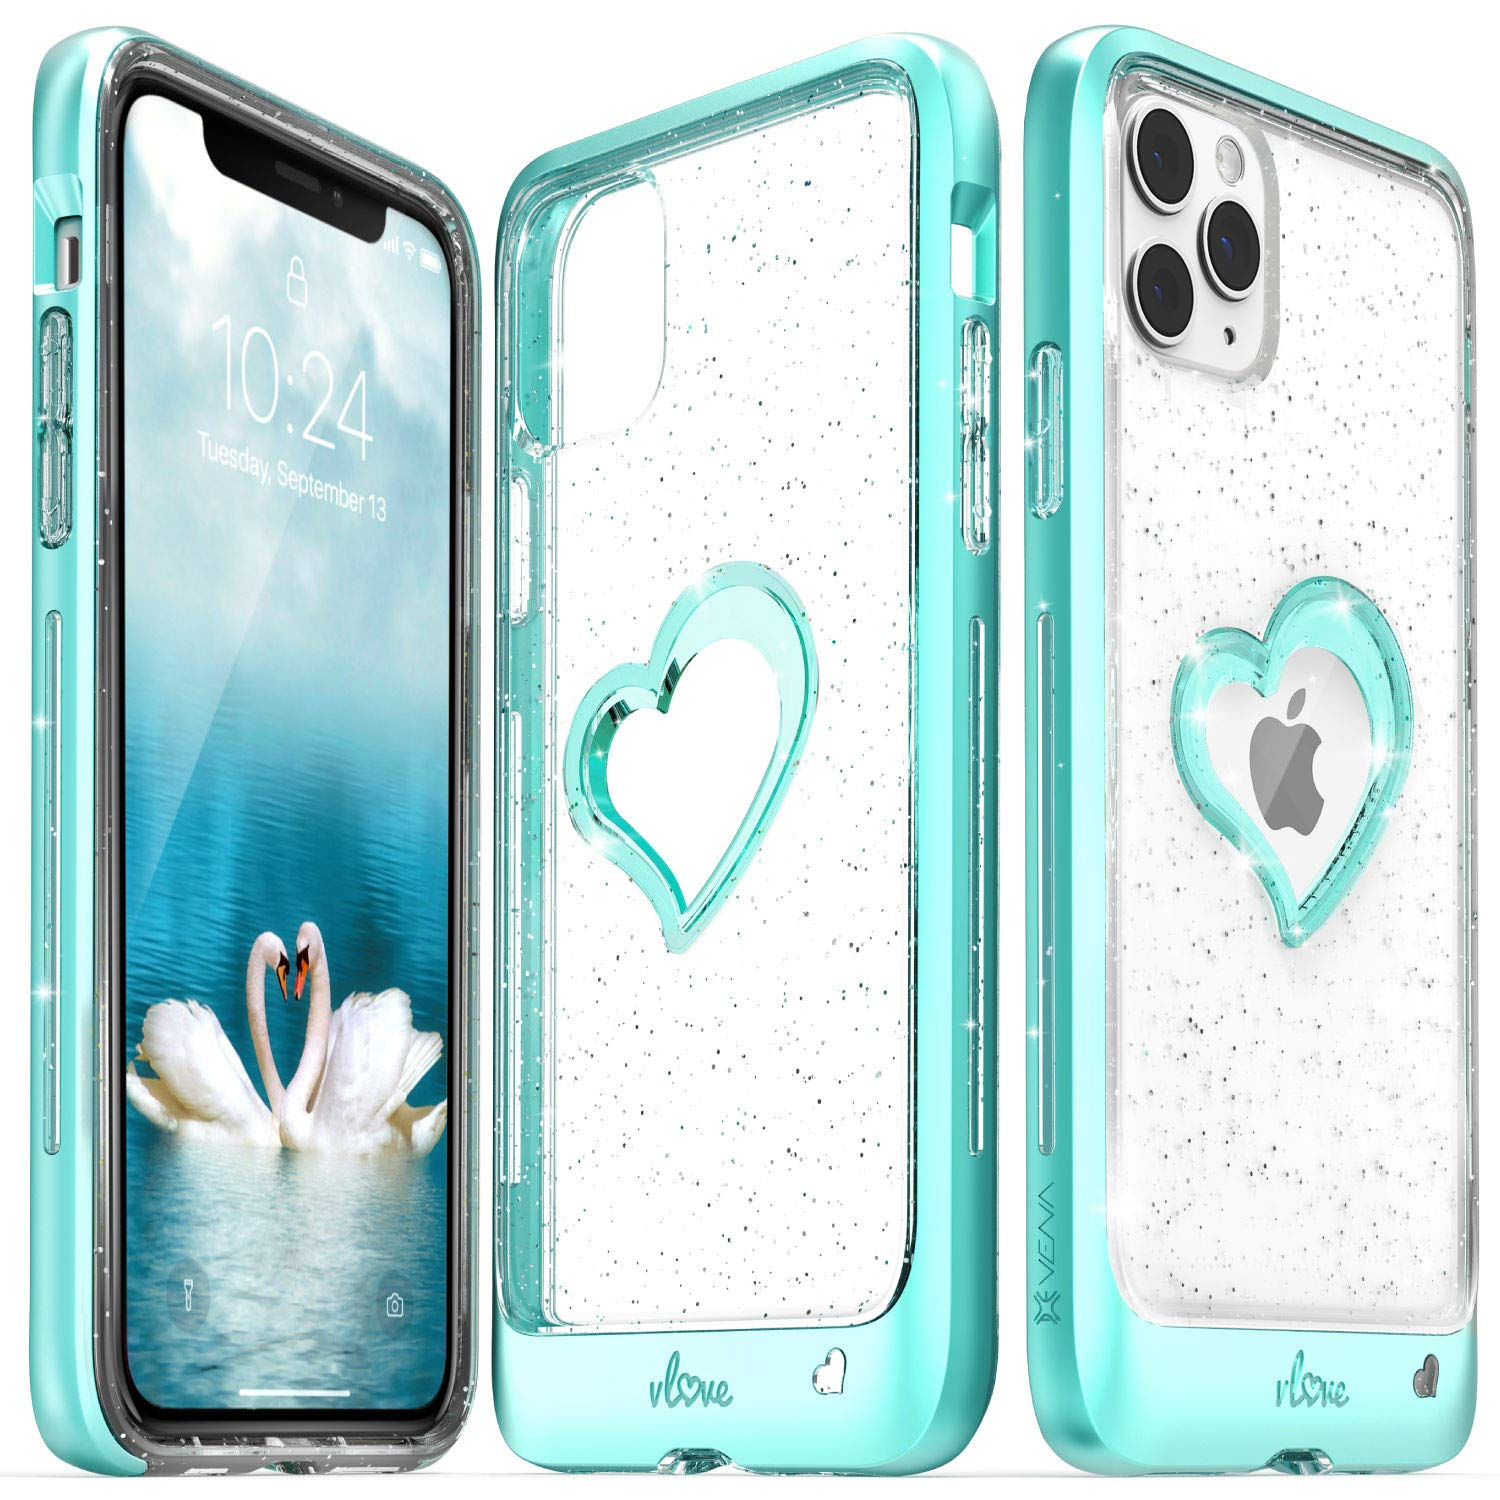 Vena iPhone 11 Pro Max Glitter Case, vLove Glitter Heart Case Slim Dual Layer Protection, Designed for iPhone 11 Pro Max (6.5 inches) - Teal (PC) and Clear TPU with Glitter